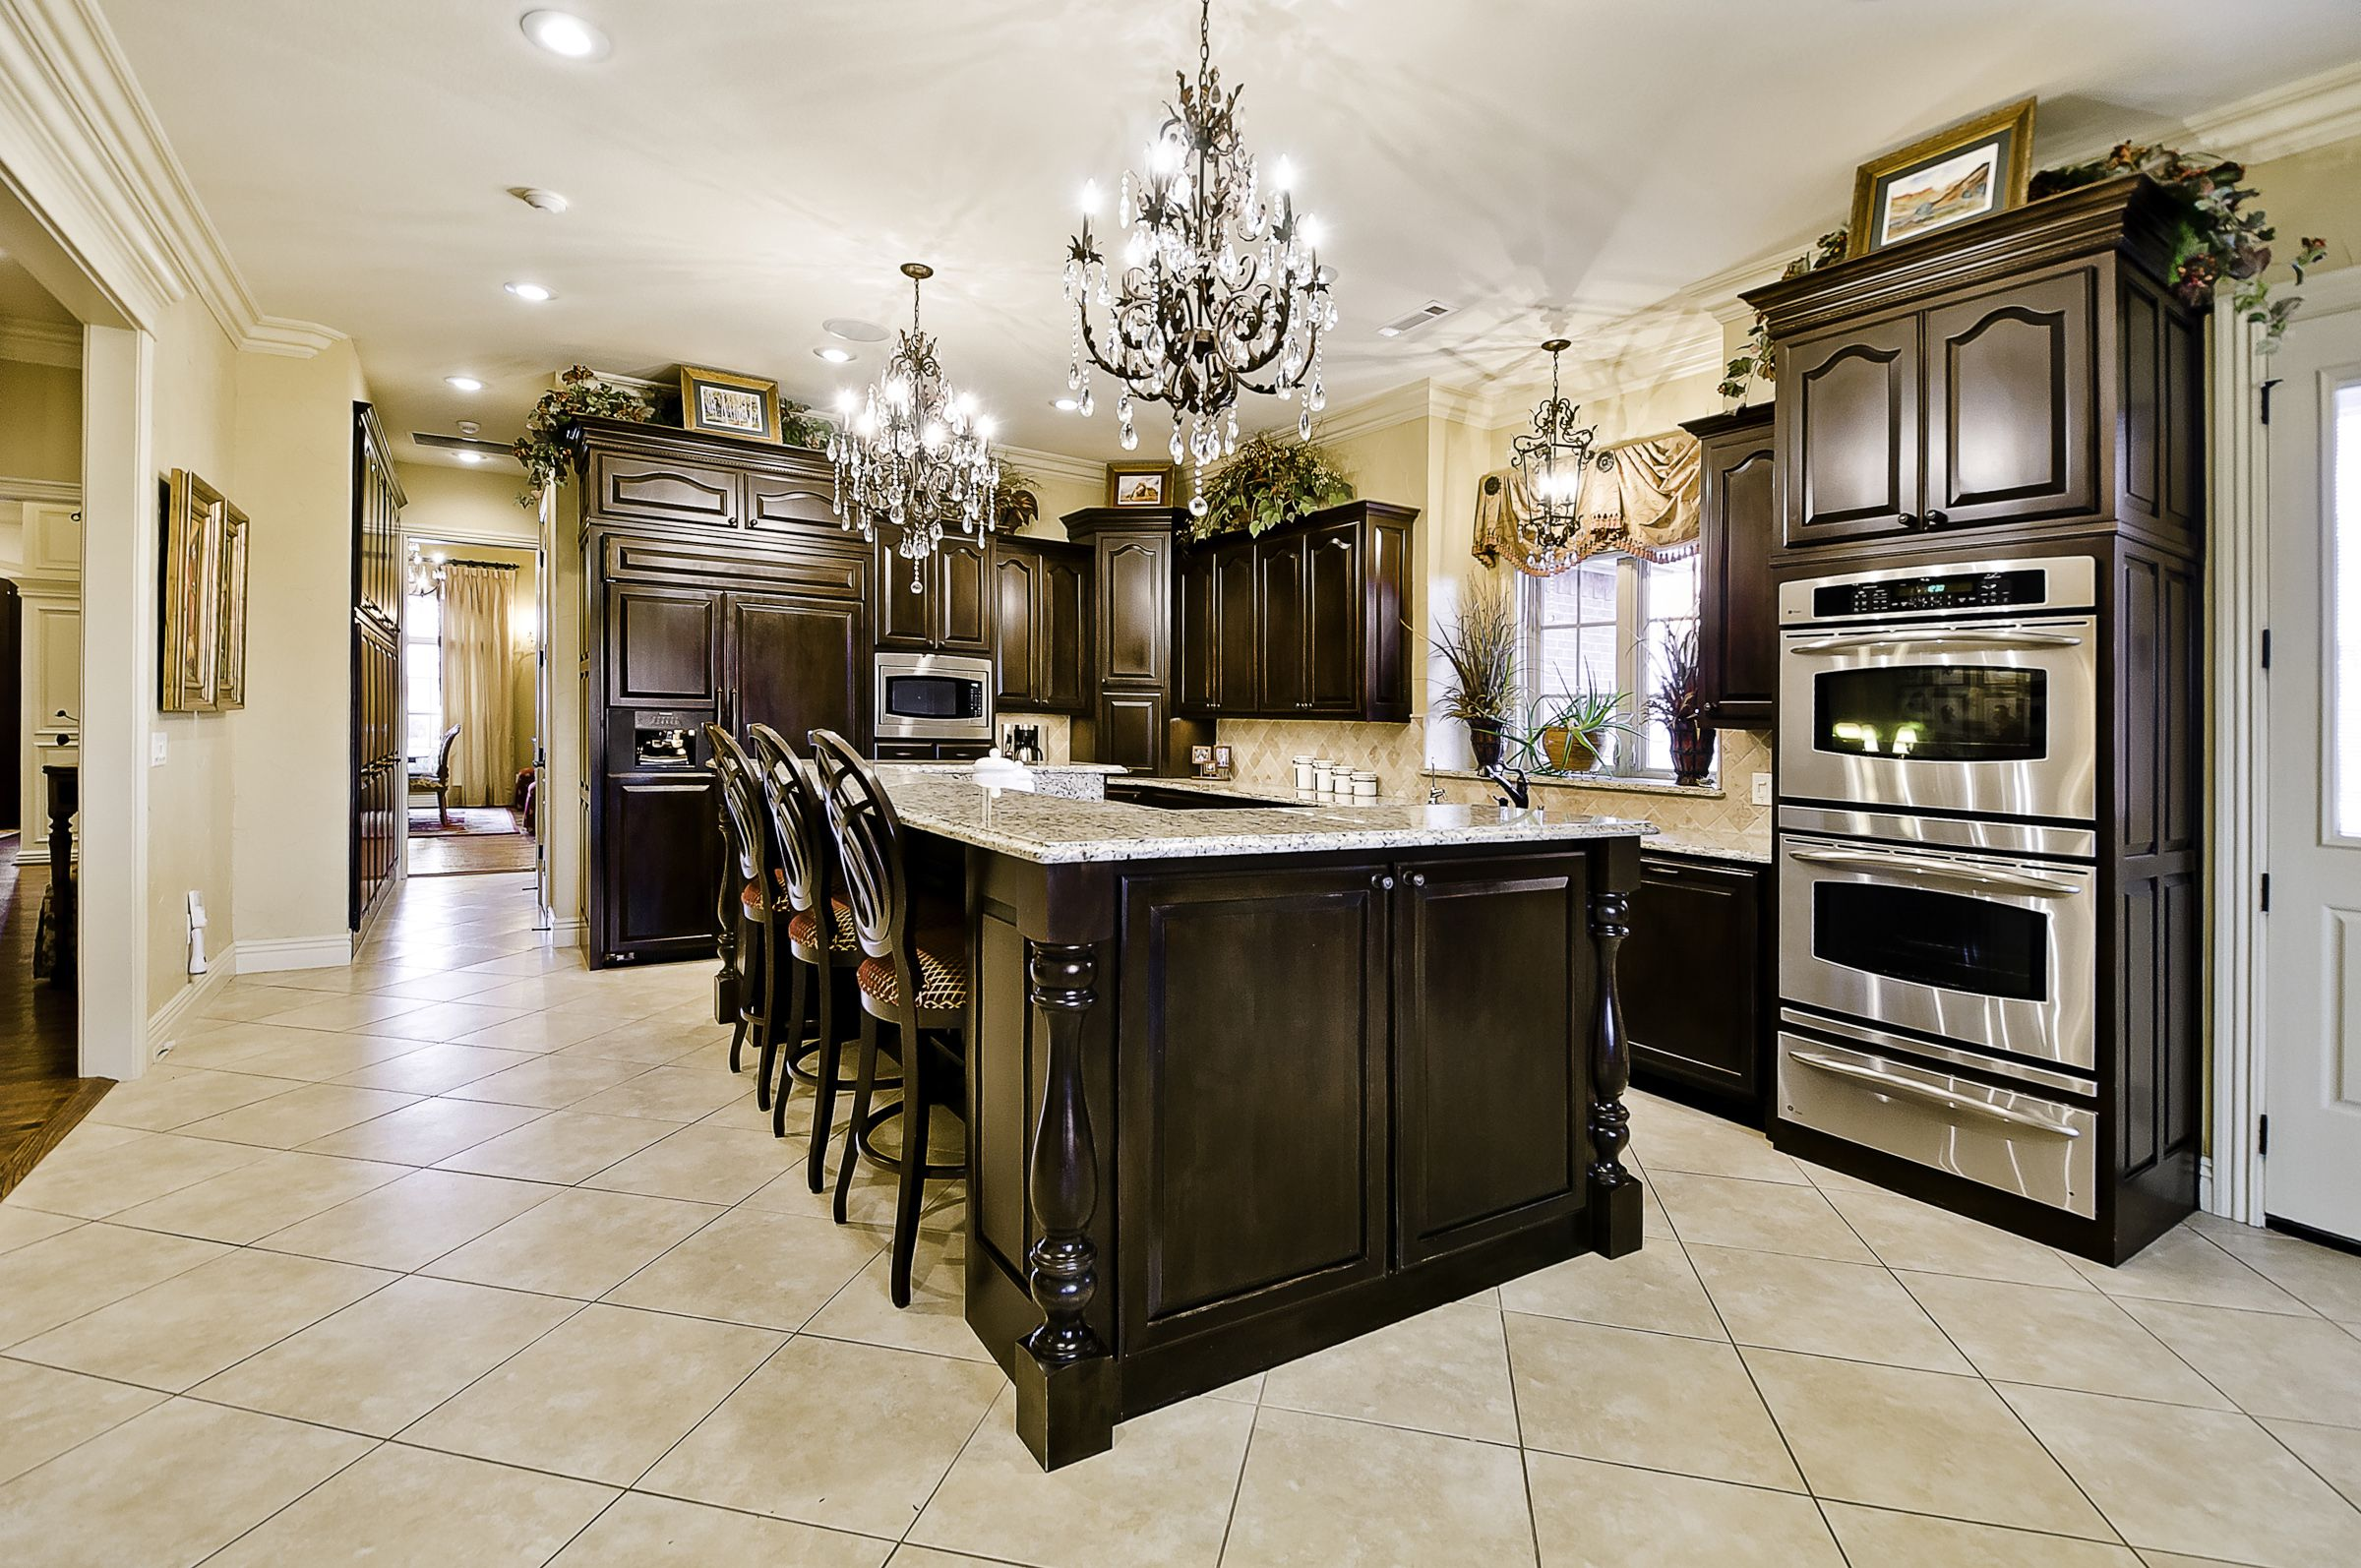 Iron And Crystal Chandeliers Over Island Kitchen Islands